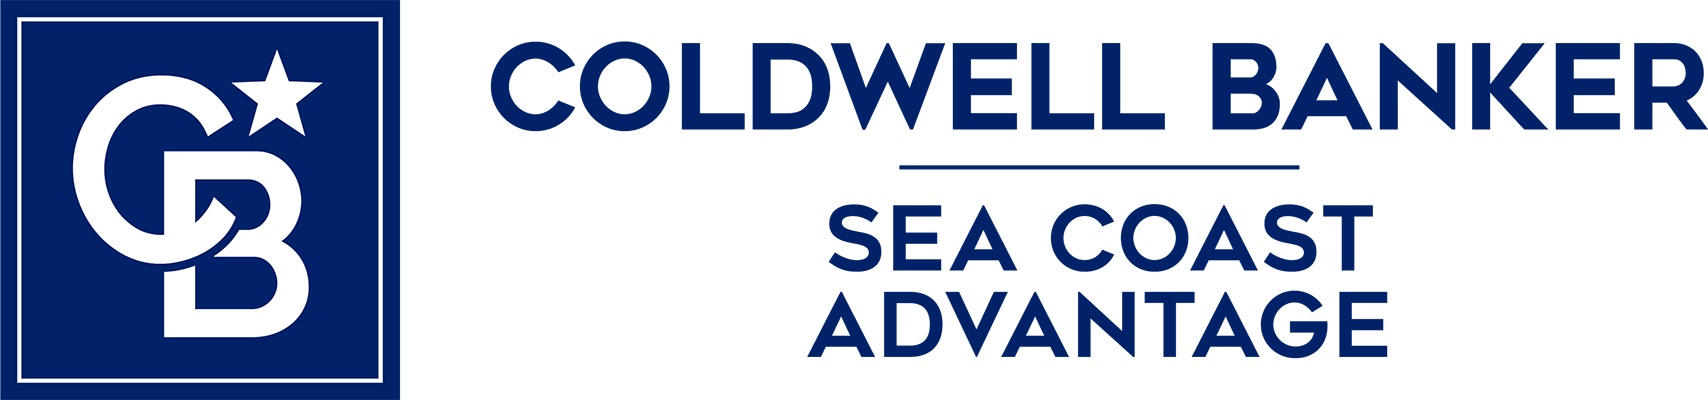 Gail Clements - Coldwell Banker Sea Coast Advantage Realty Logo